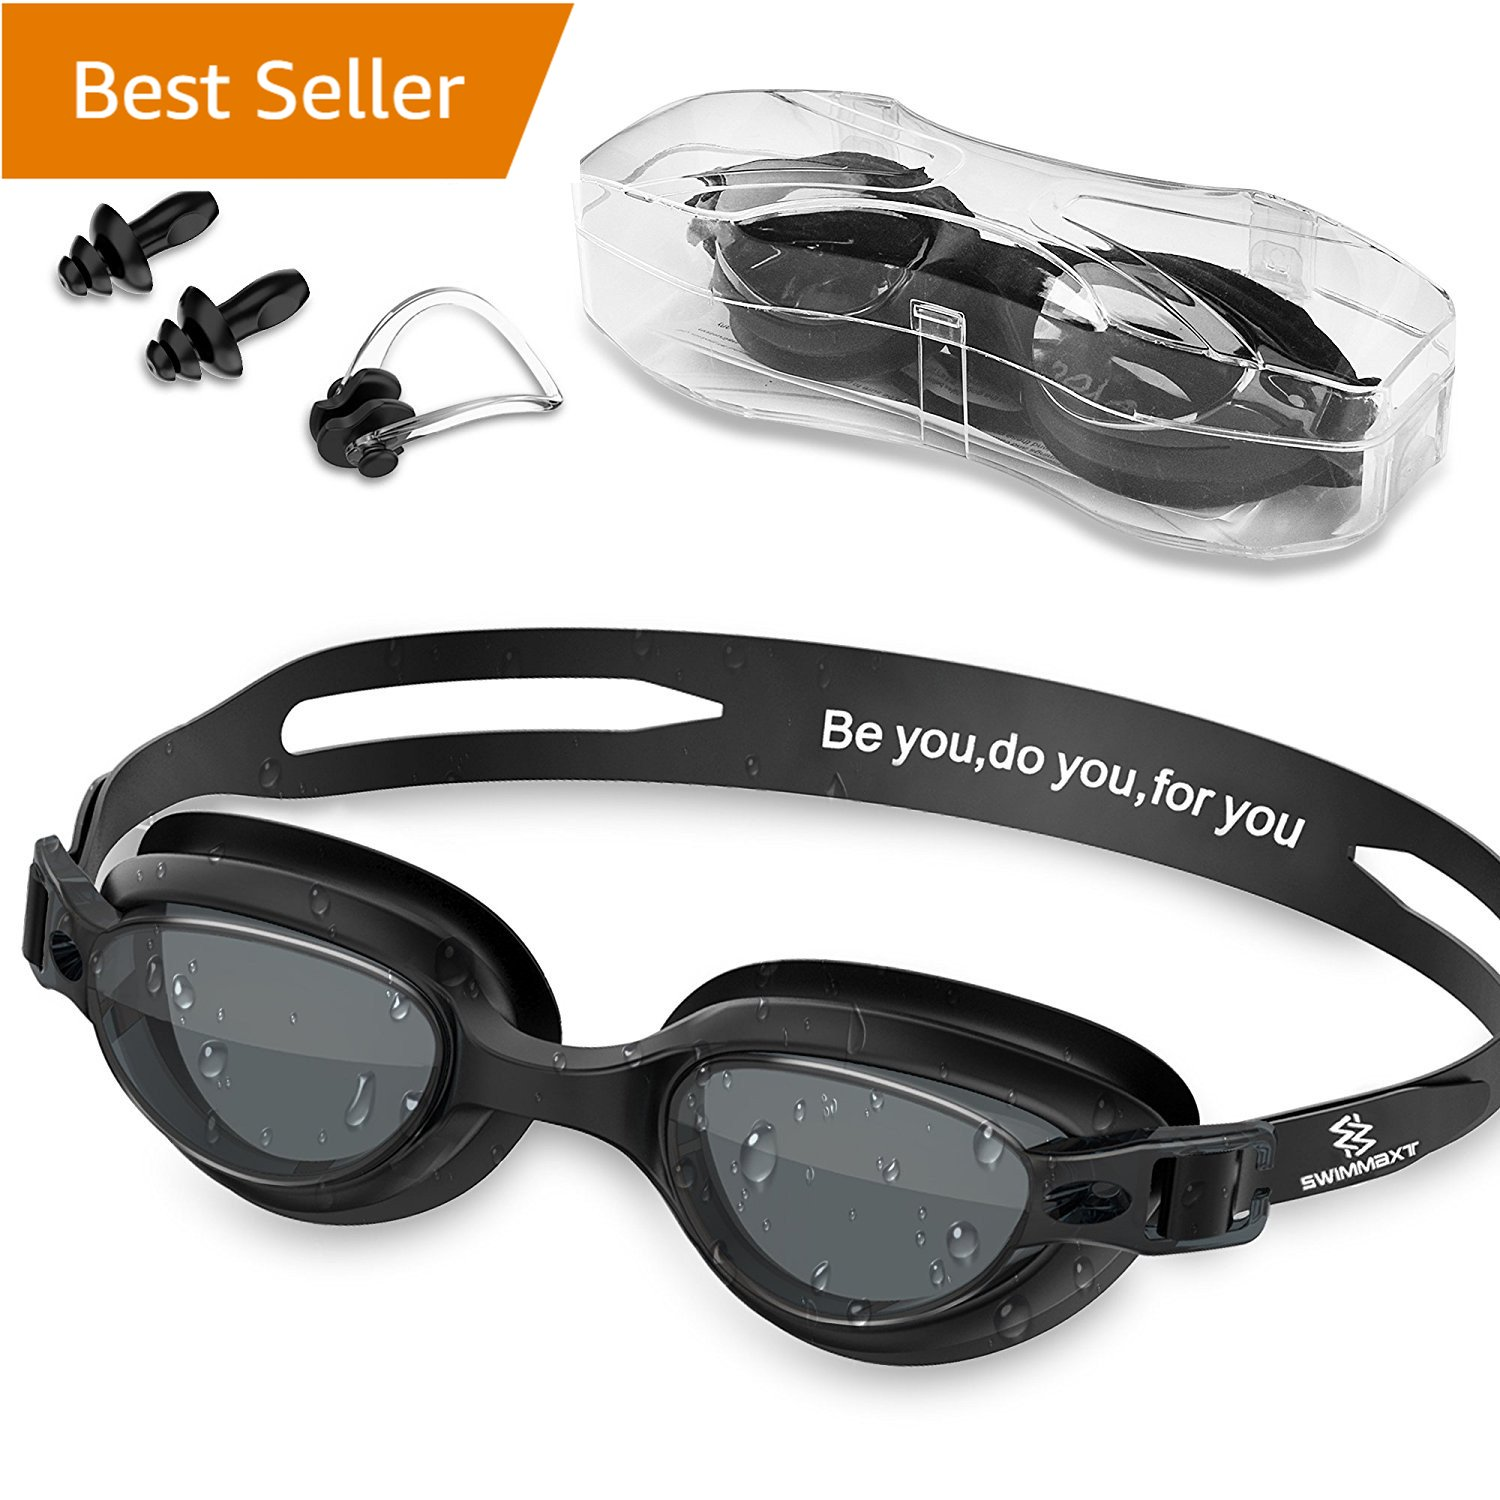 abc49fa44c8 See all customer reviews · Swim Goggles - Swimming Goggles with Nose Clip +  Ear Plugs